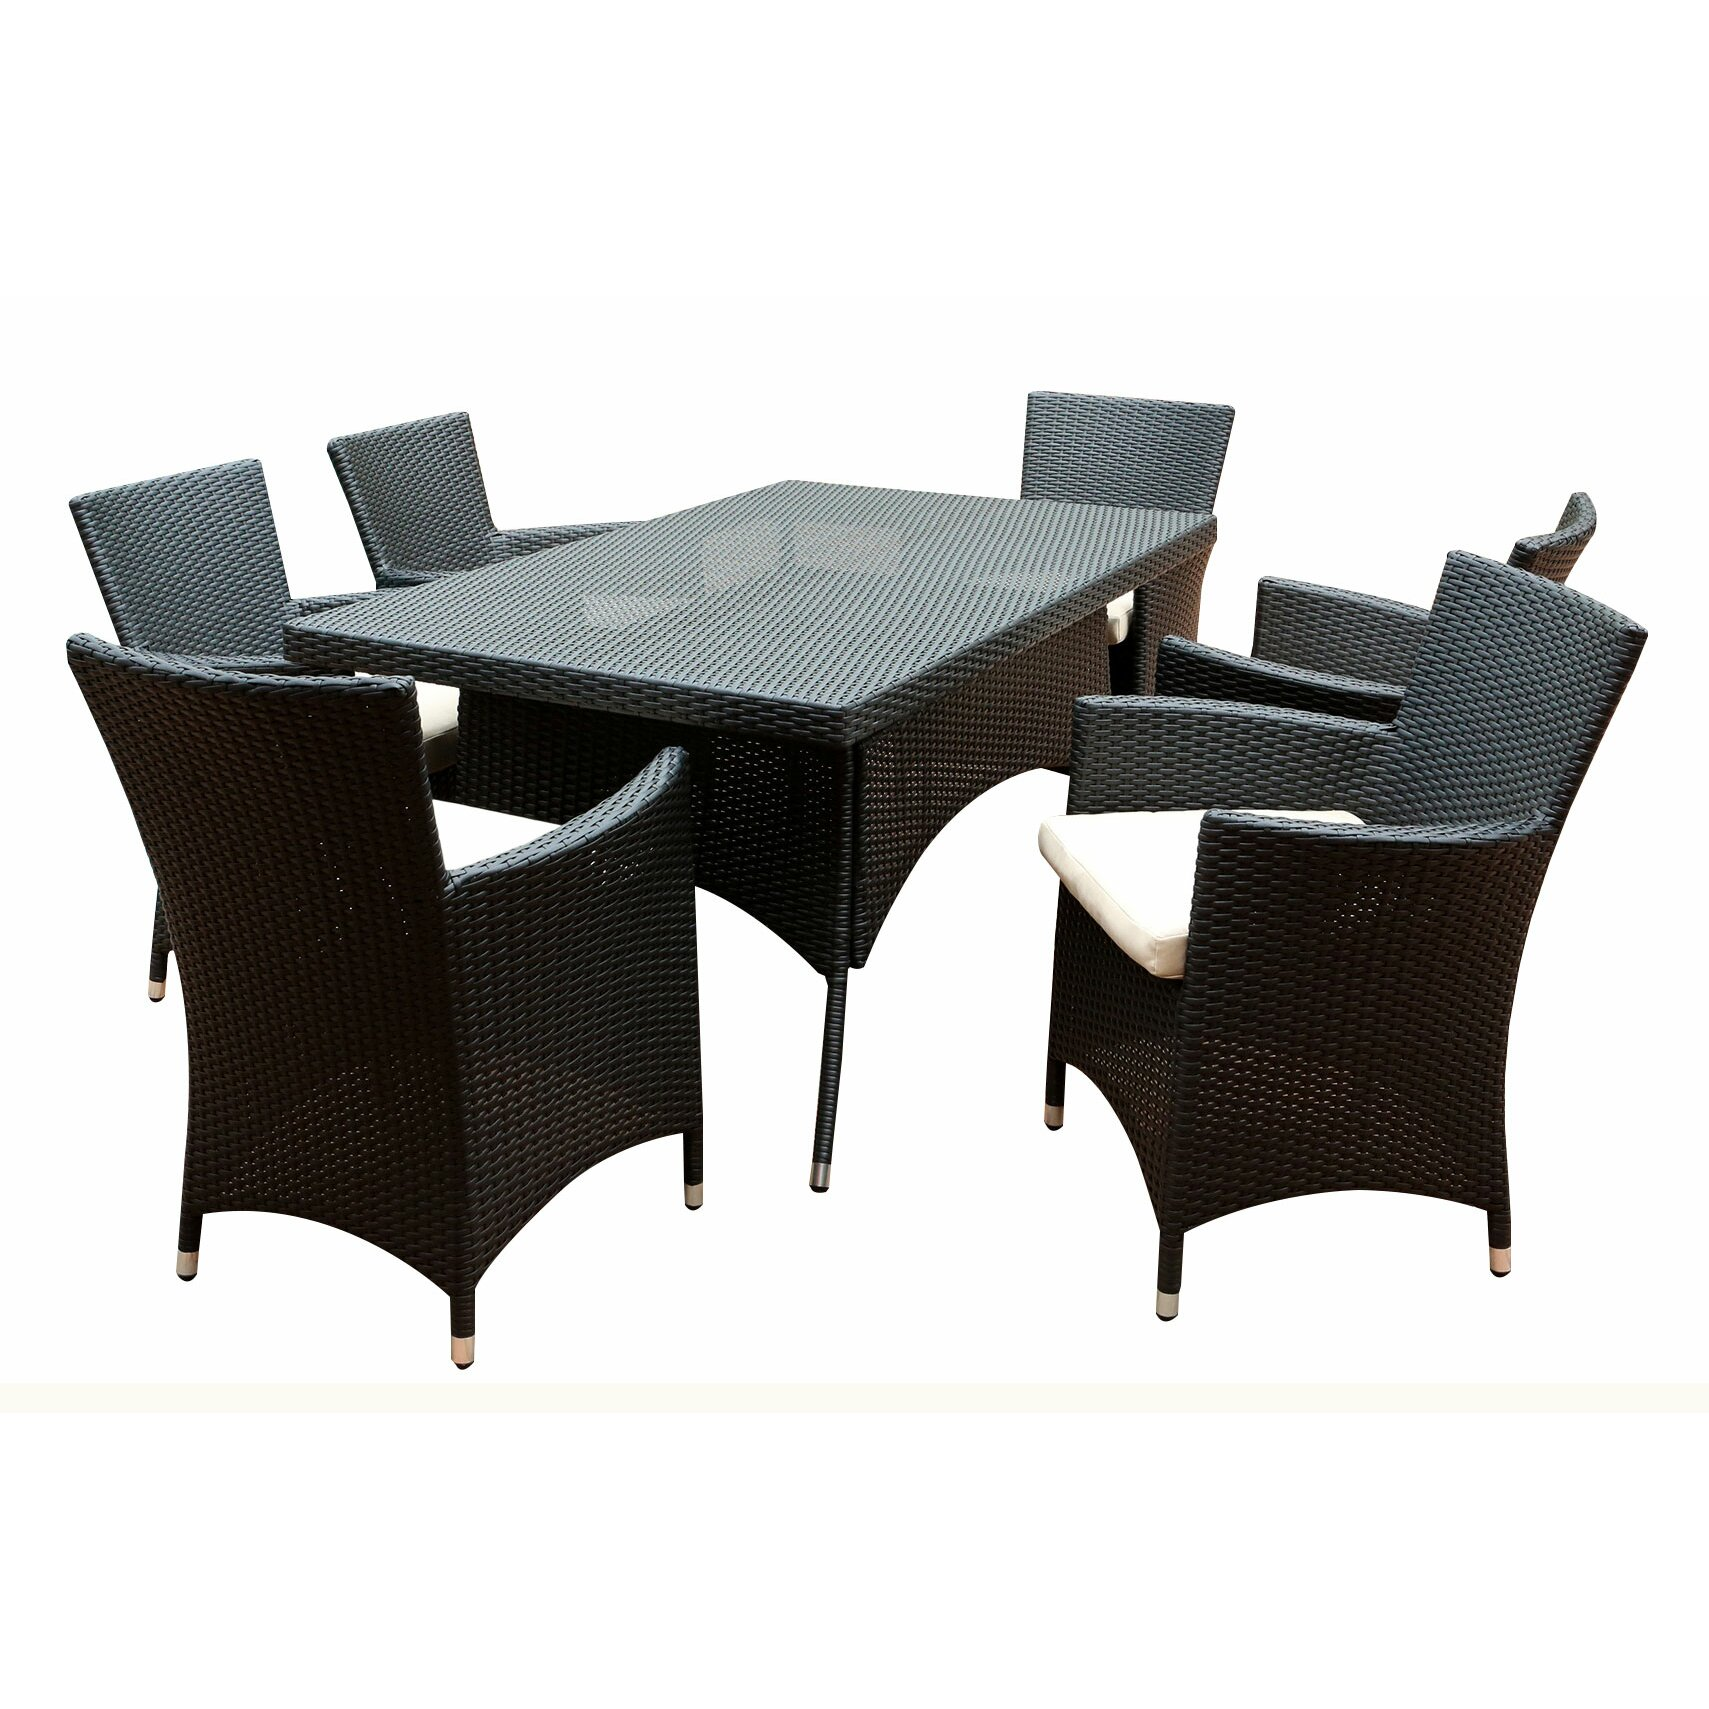 Abbyson living pasadena 7 piece dining set reviews wayfair for 7 piece dining set